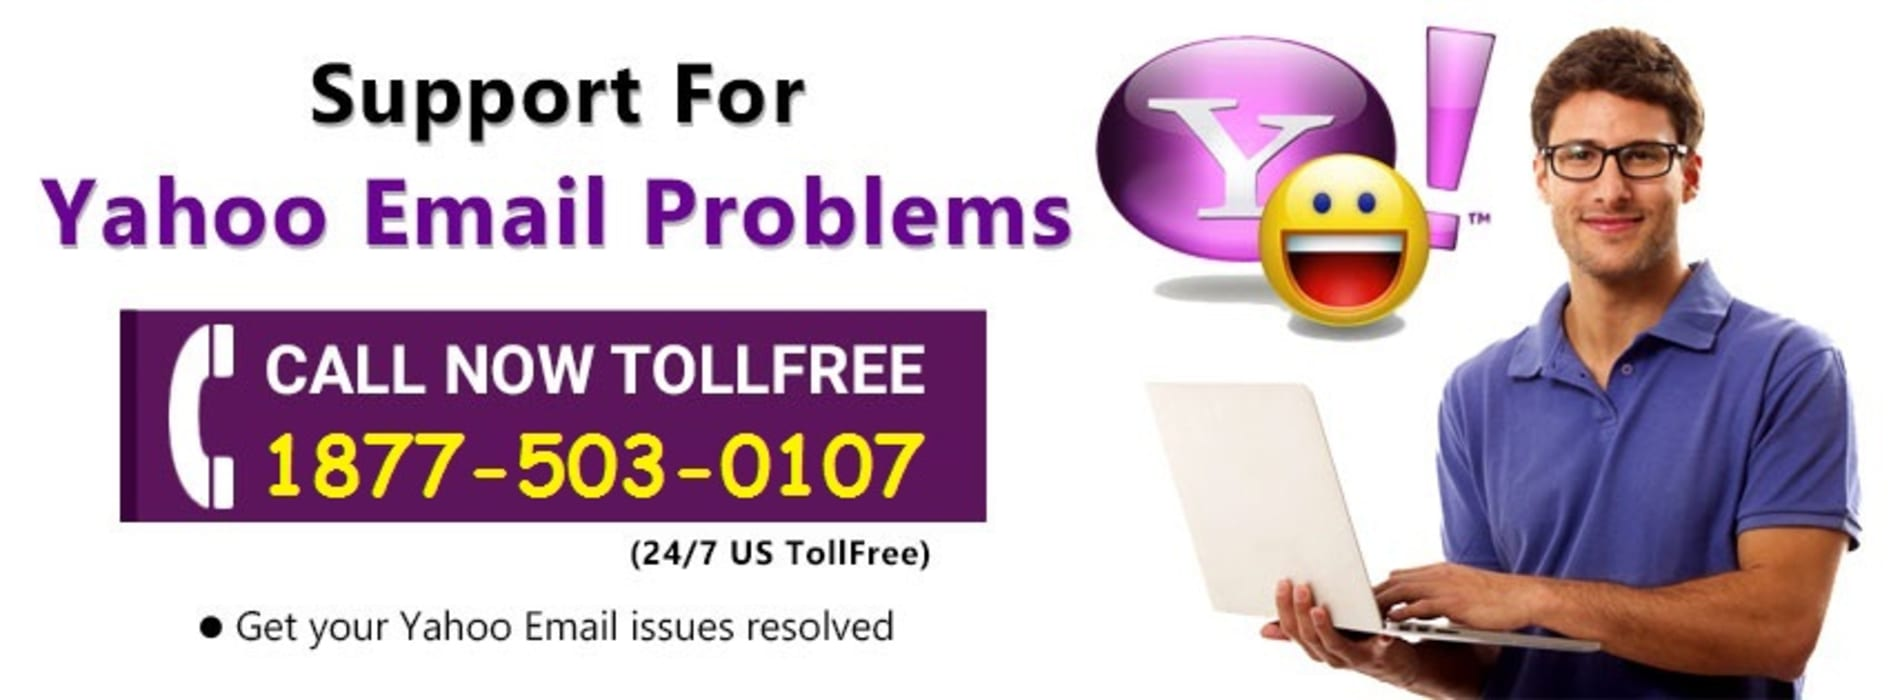 Yahoo Mail Customer Service Number 1877-503-0107 Yahoo Mail Support Number 1877-503-0107 طبقه چوب صنعتی Metallic/Silver